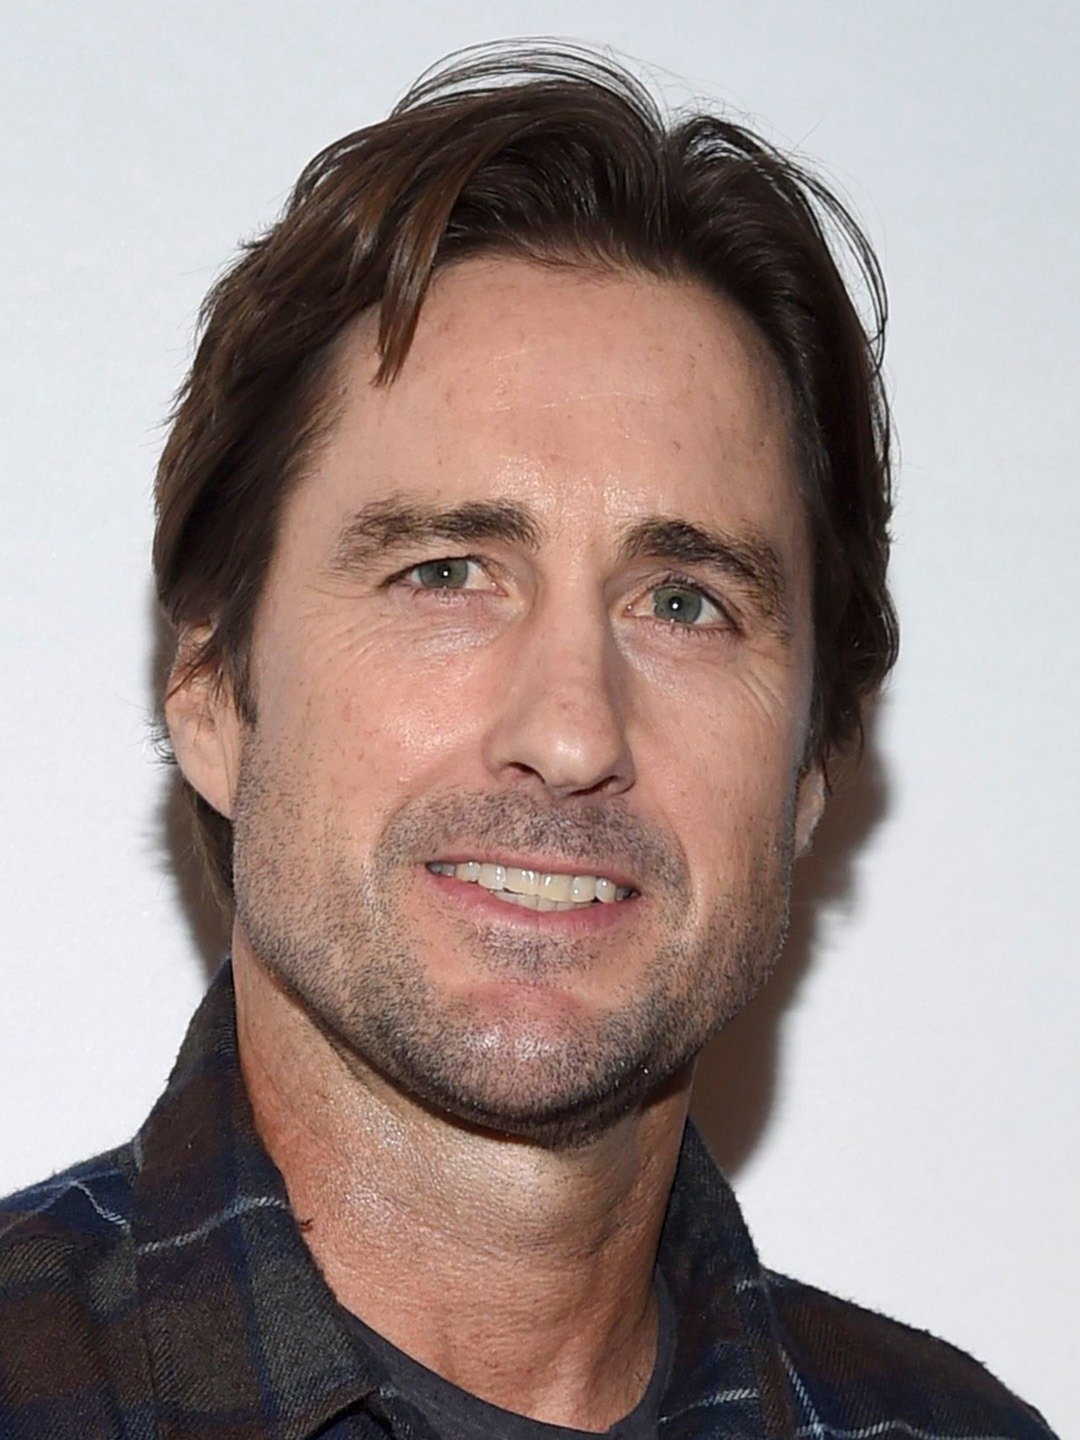 How tall is Luke Wilson?